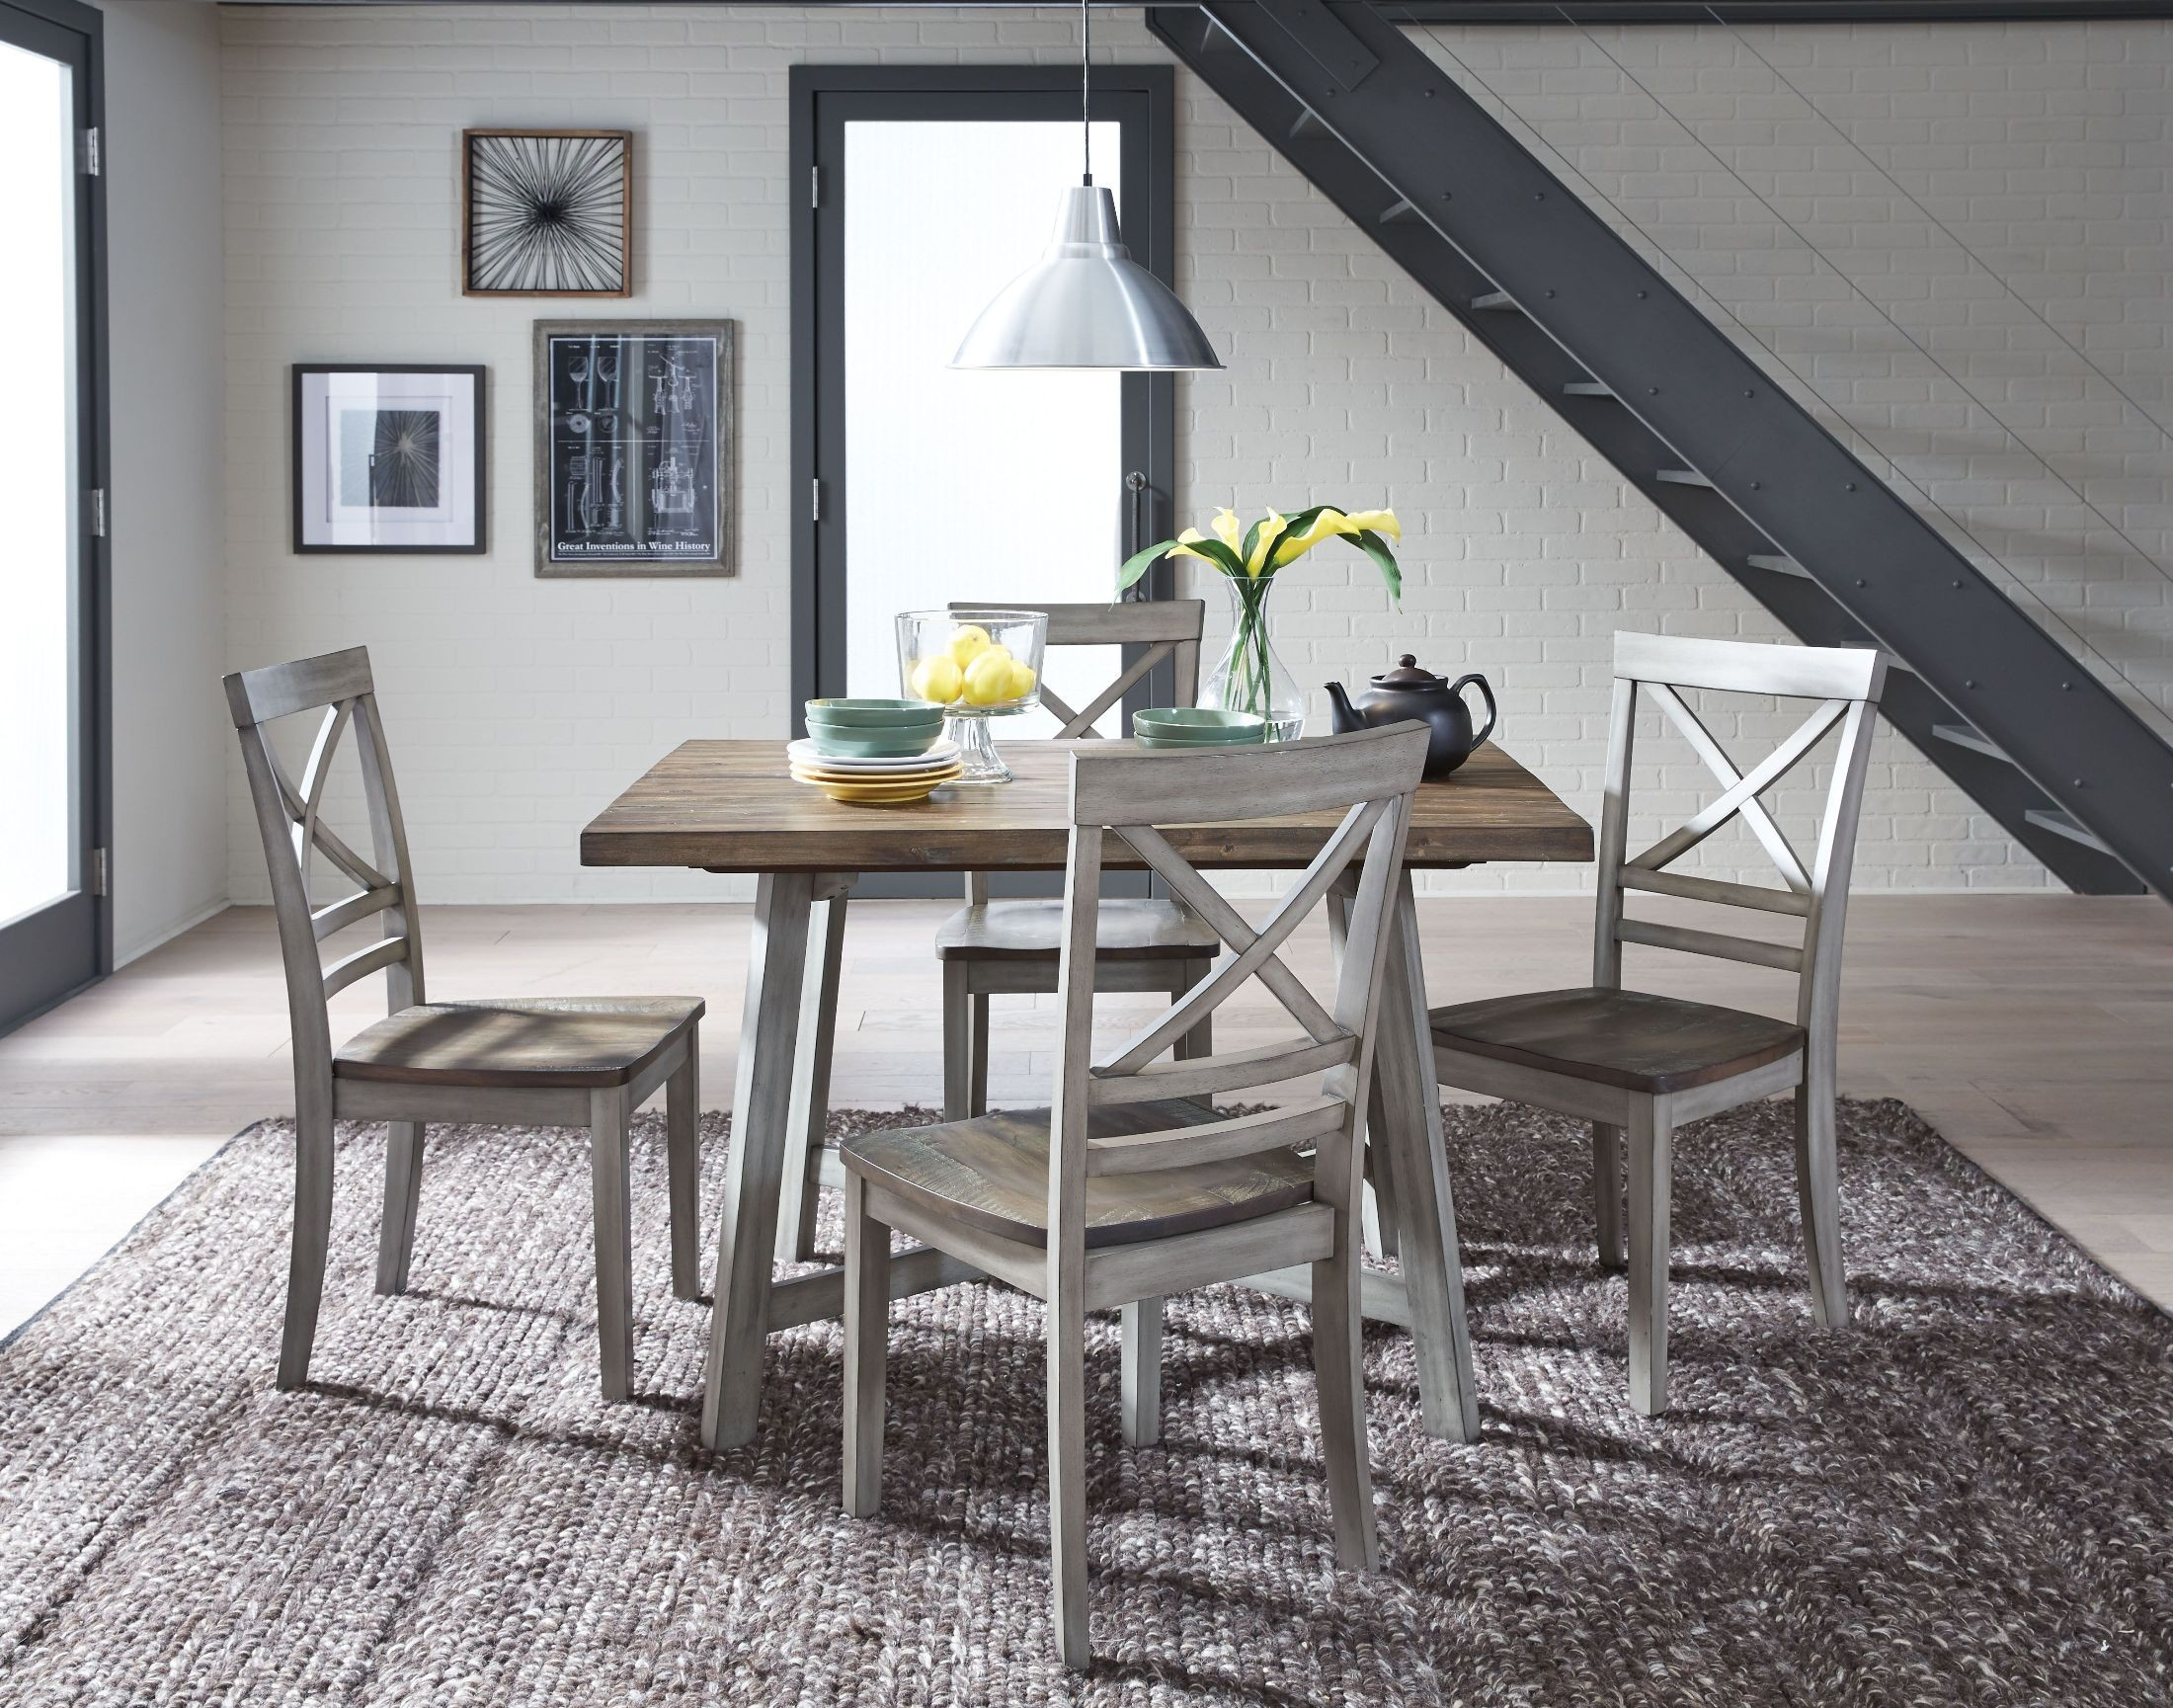 Fairhaven Rustic Grey Dining Table Set from Standard